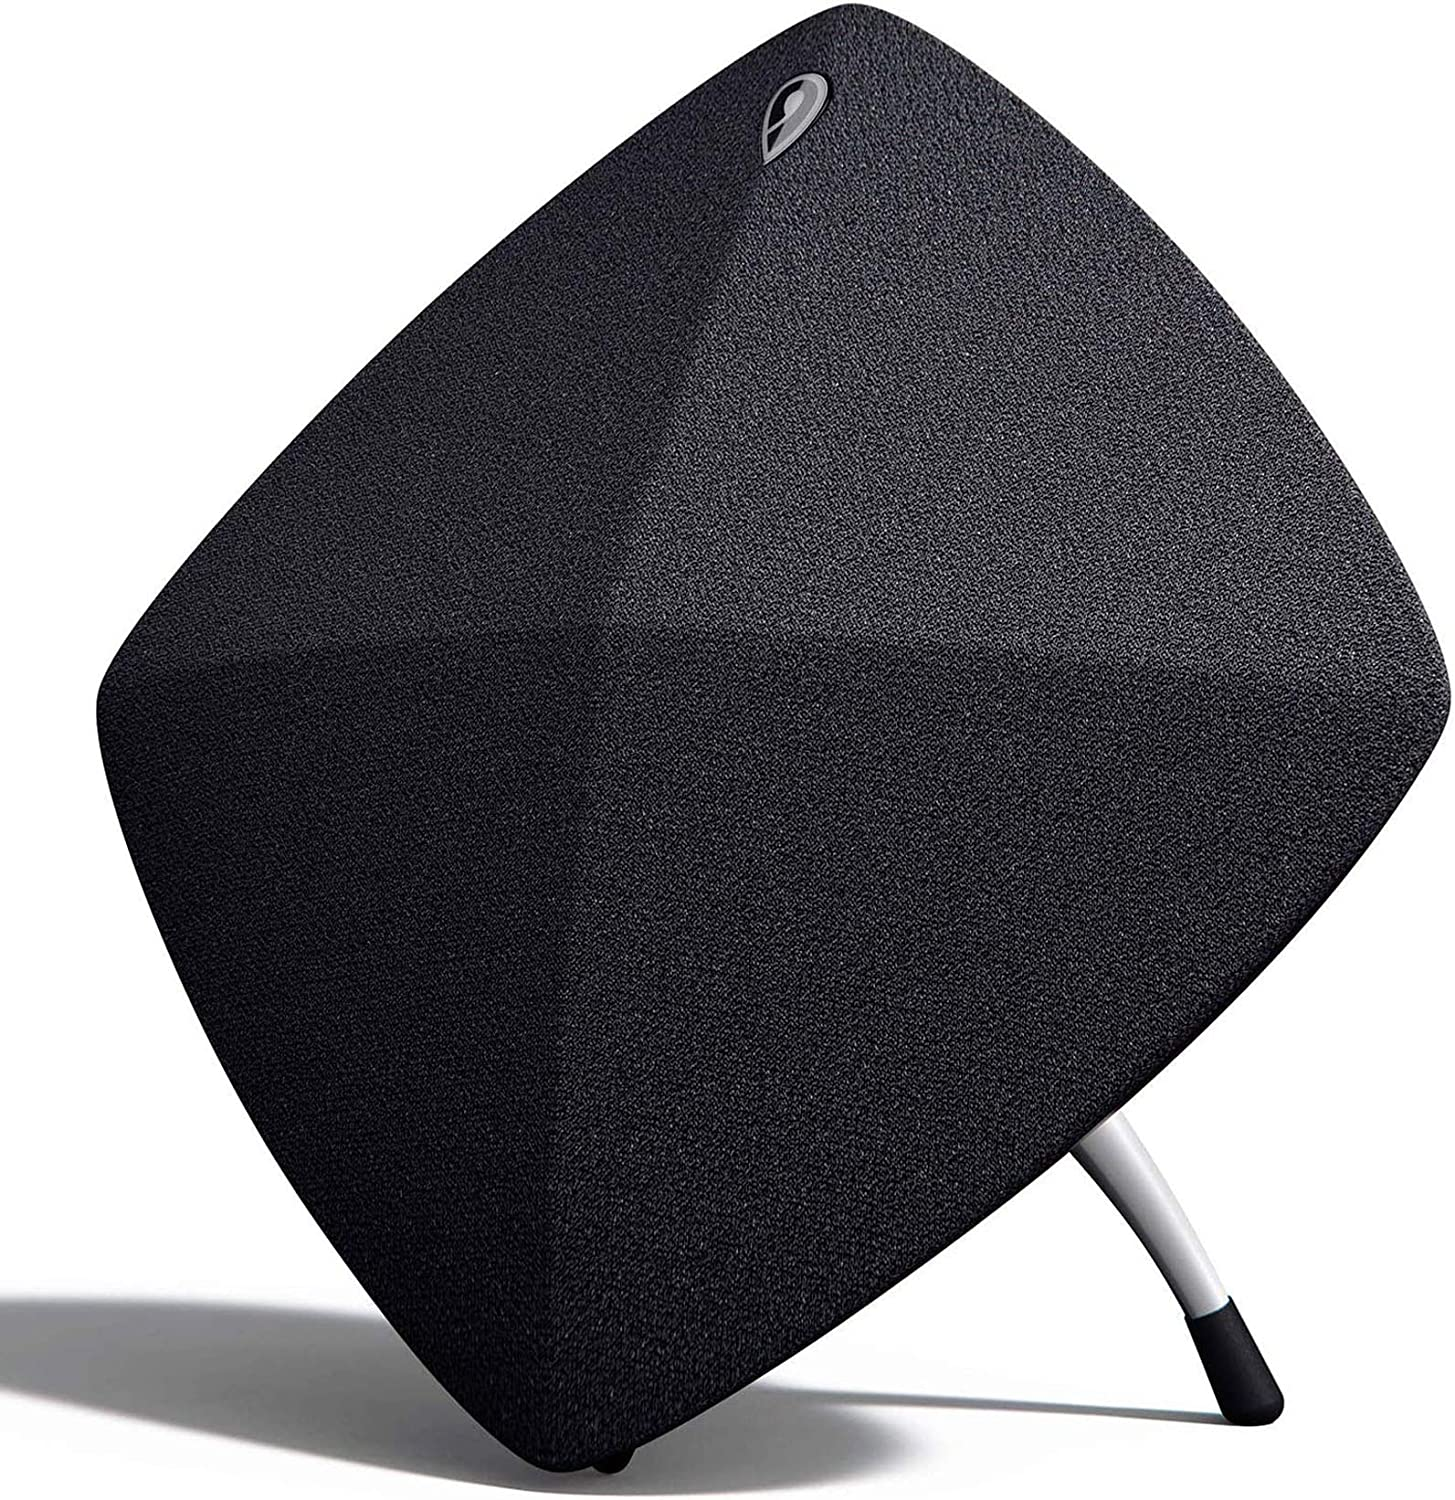 Asimom Bluetooth Speaker with 45W Extended Bass